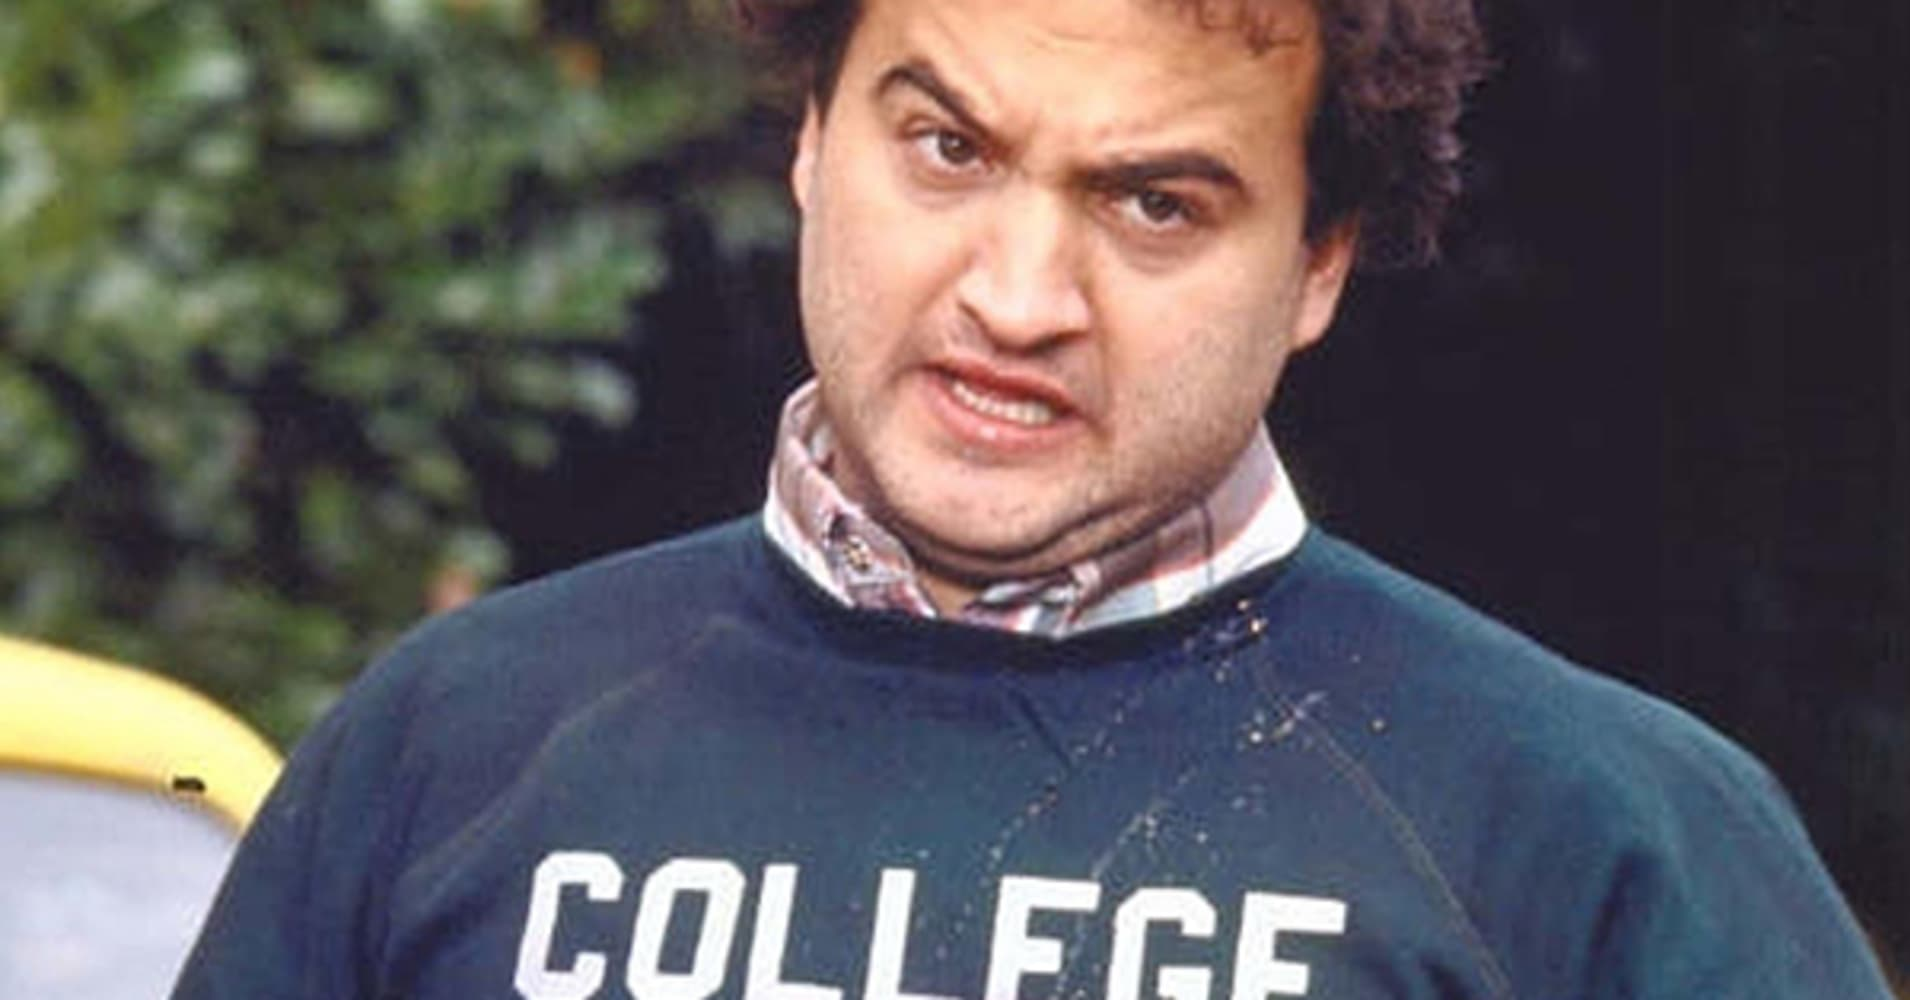 Getting into a fraternity